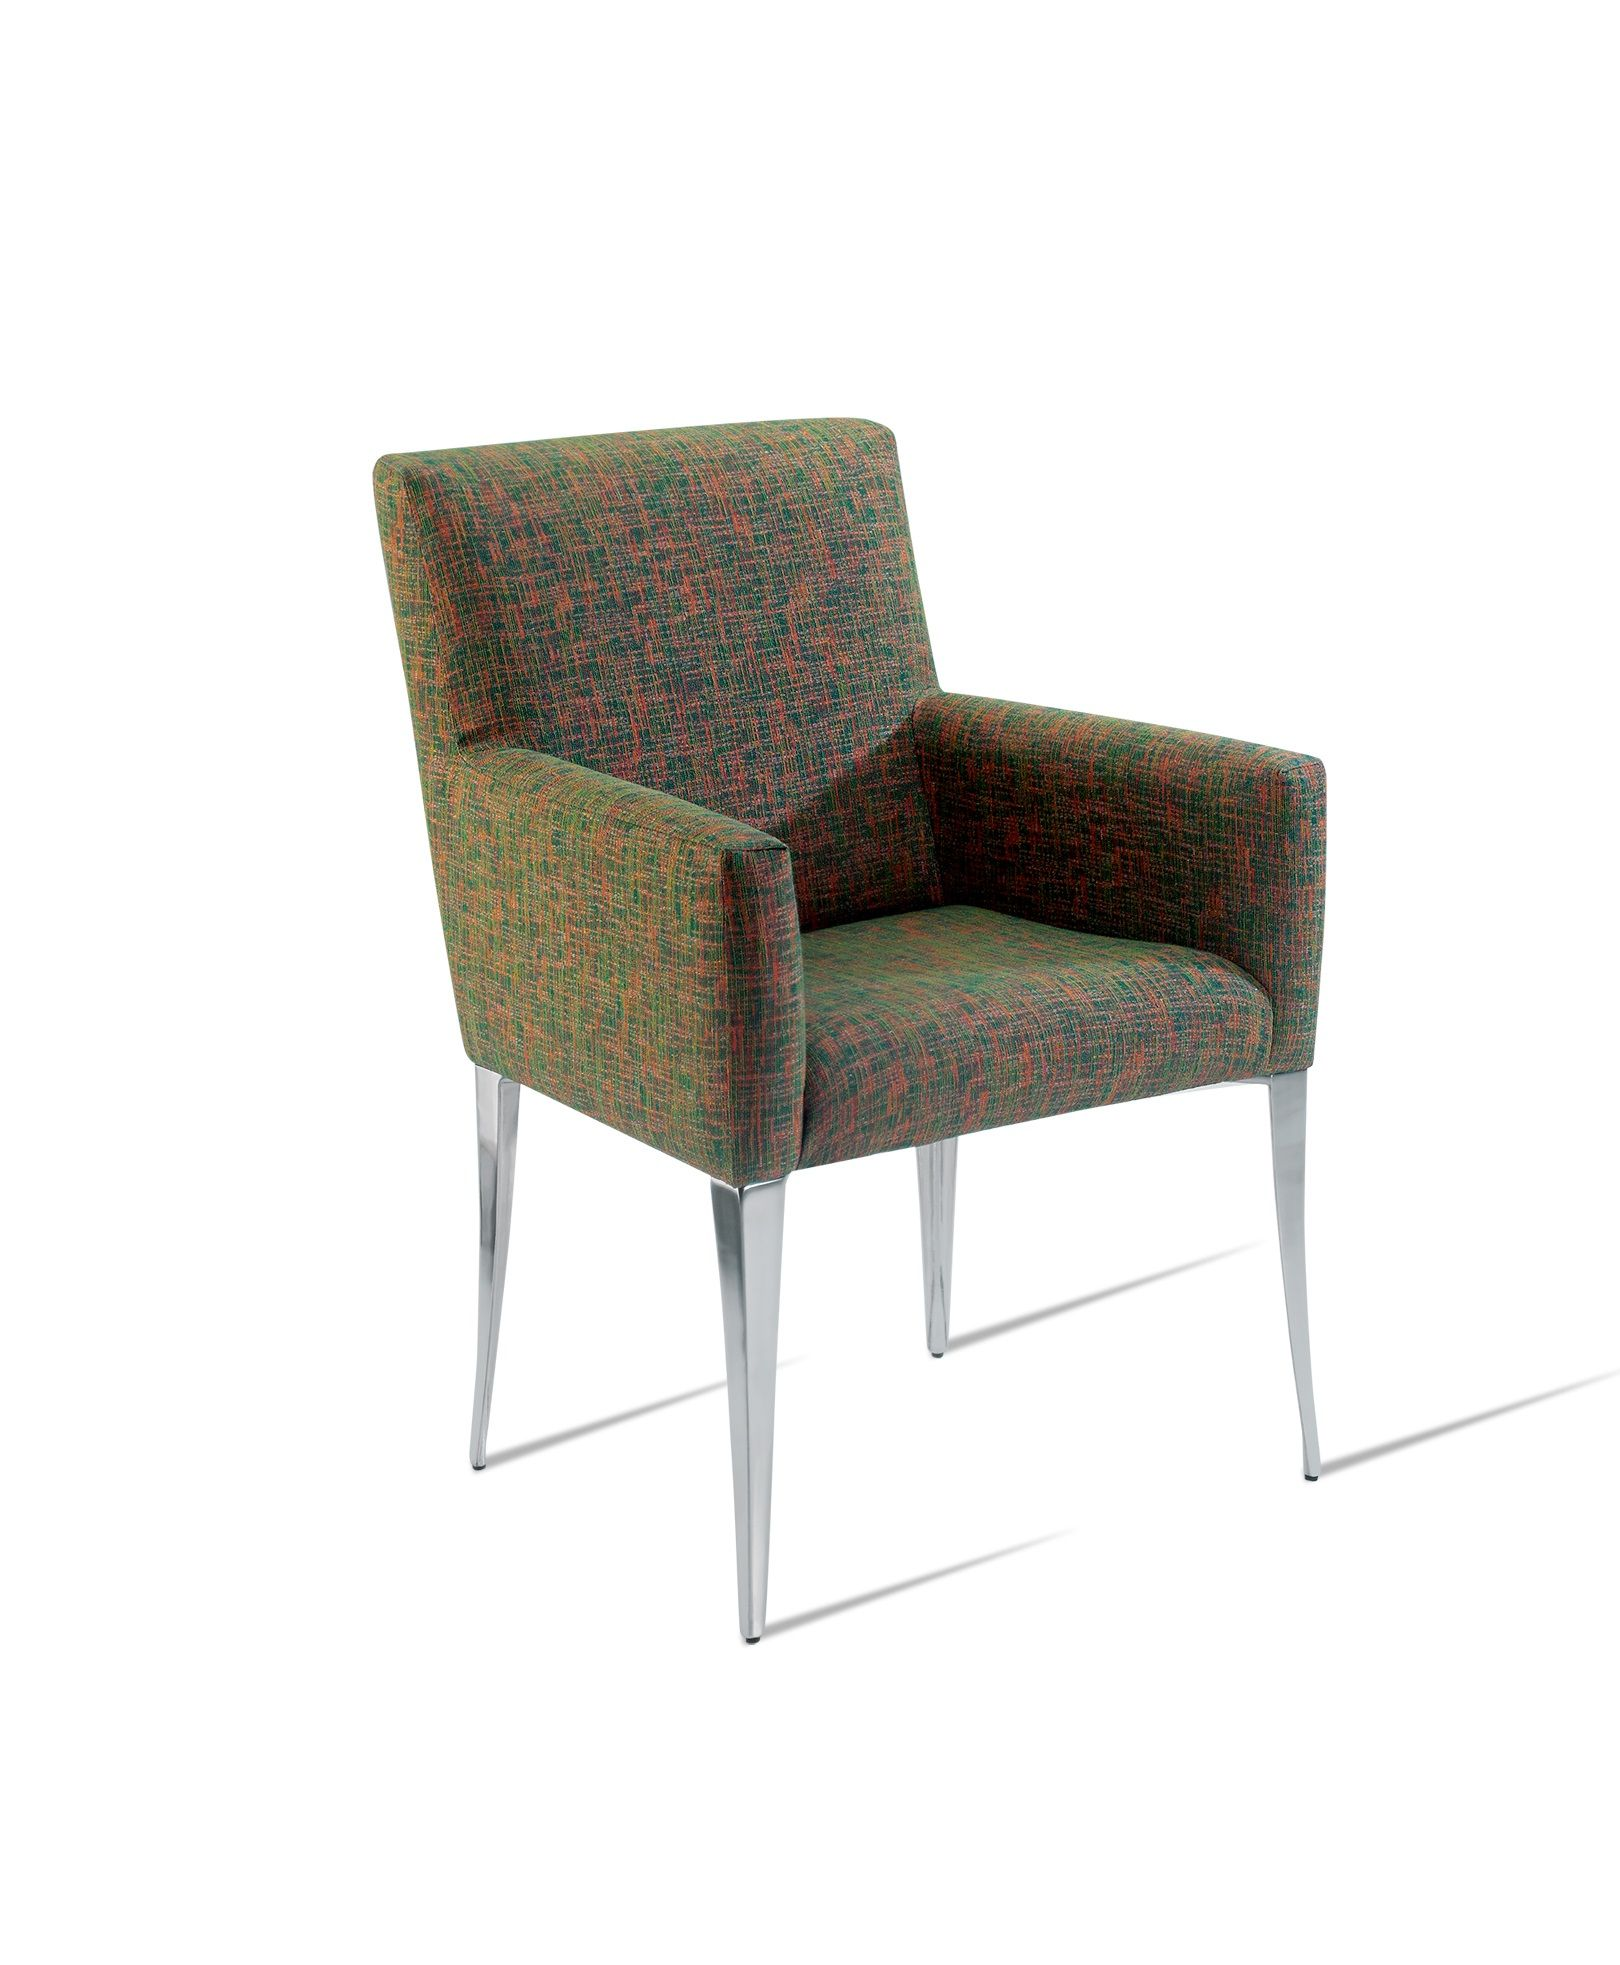 Introducing The Quattro Chair For Individuals With Discernment